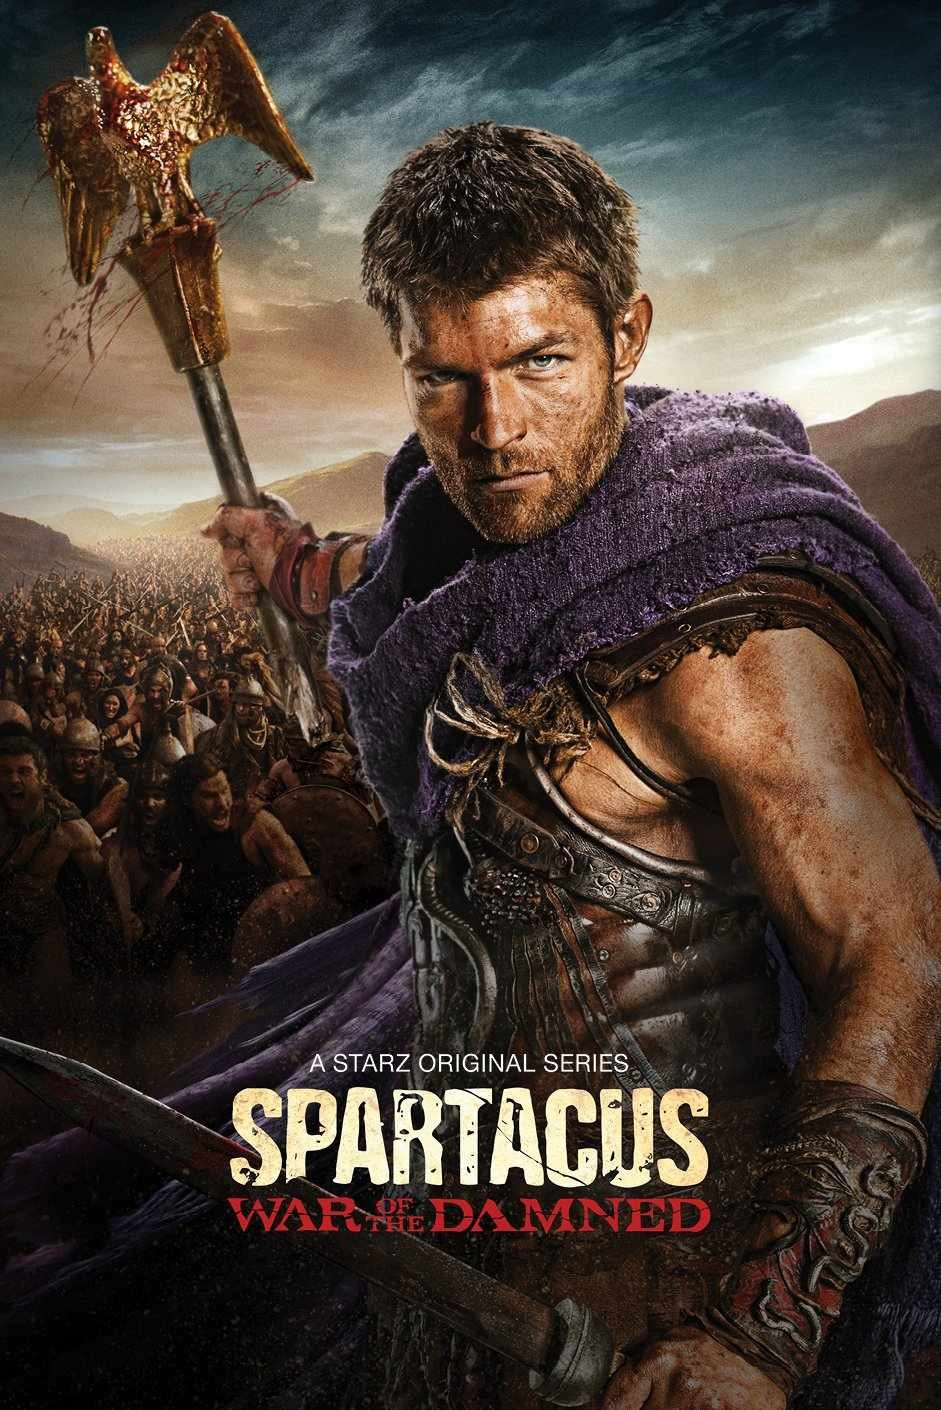 ������ ������� 1,2,3,4 �����: ����� ��������� �������� ������ / Spartacus: War of the Damned (2013)